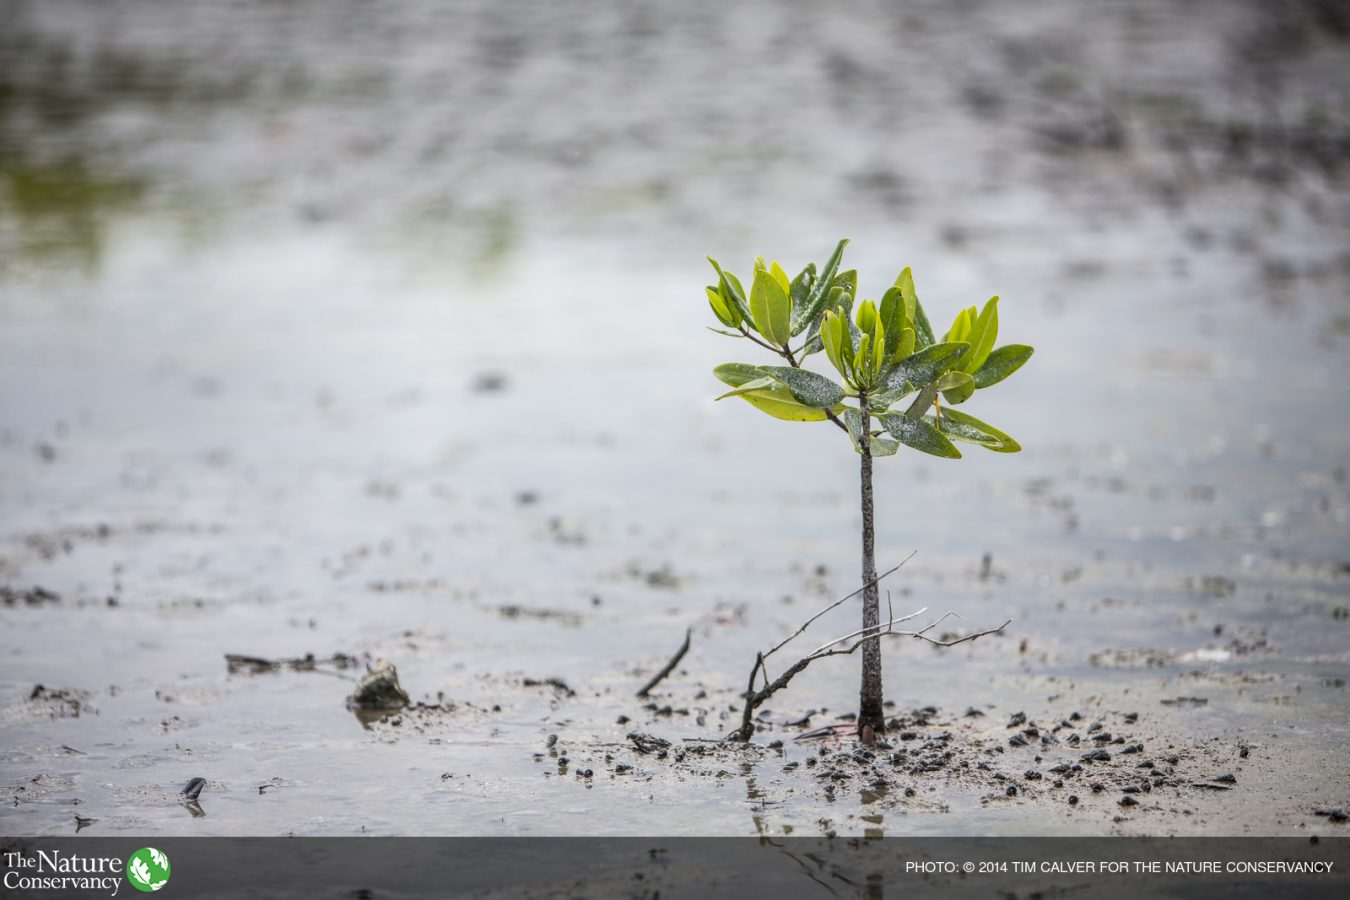 TNC Teams up with IUCN to Map Mangrove Restoration Potential